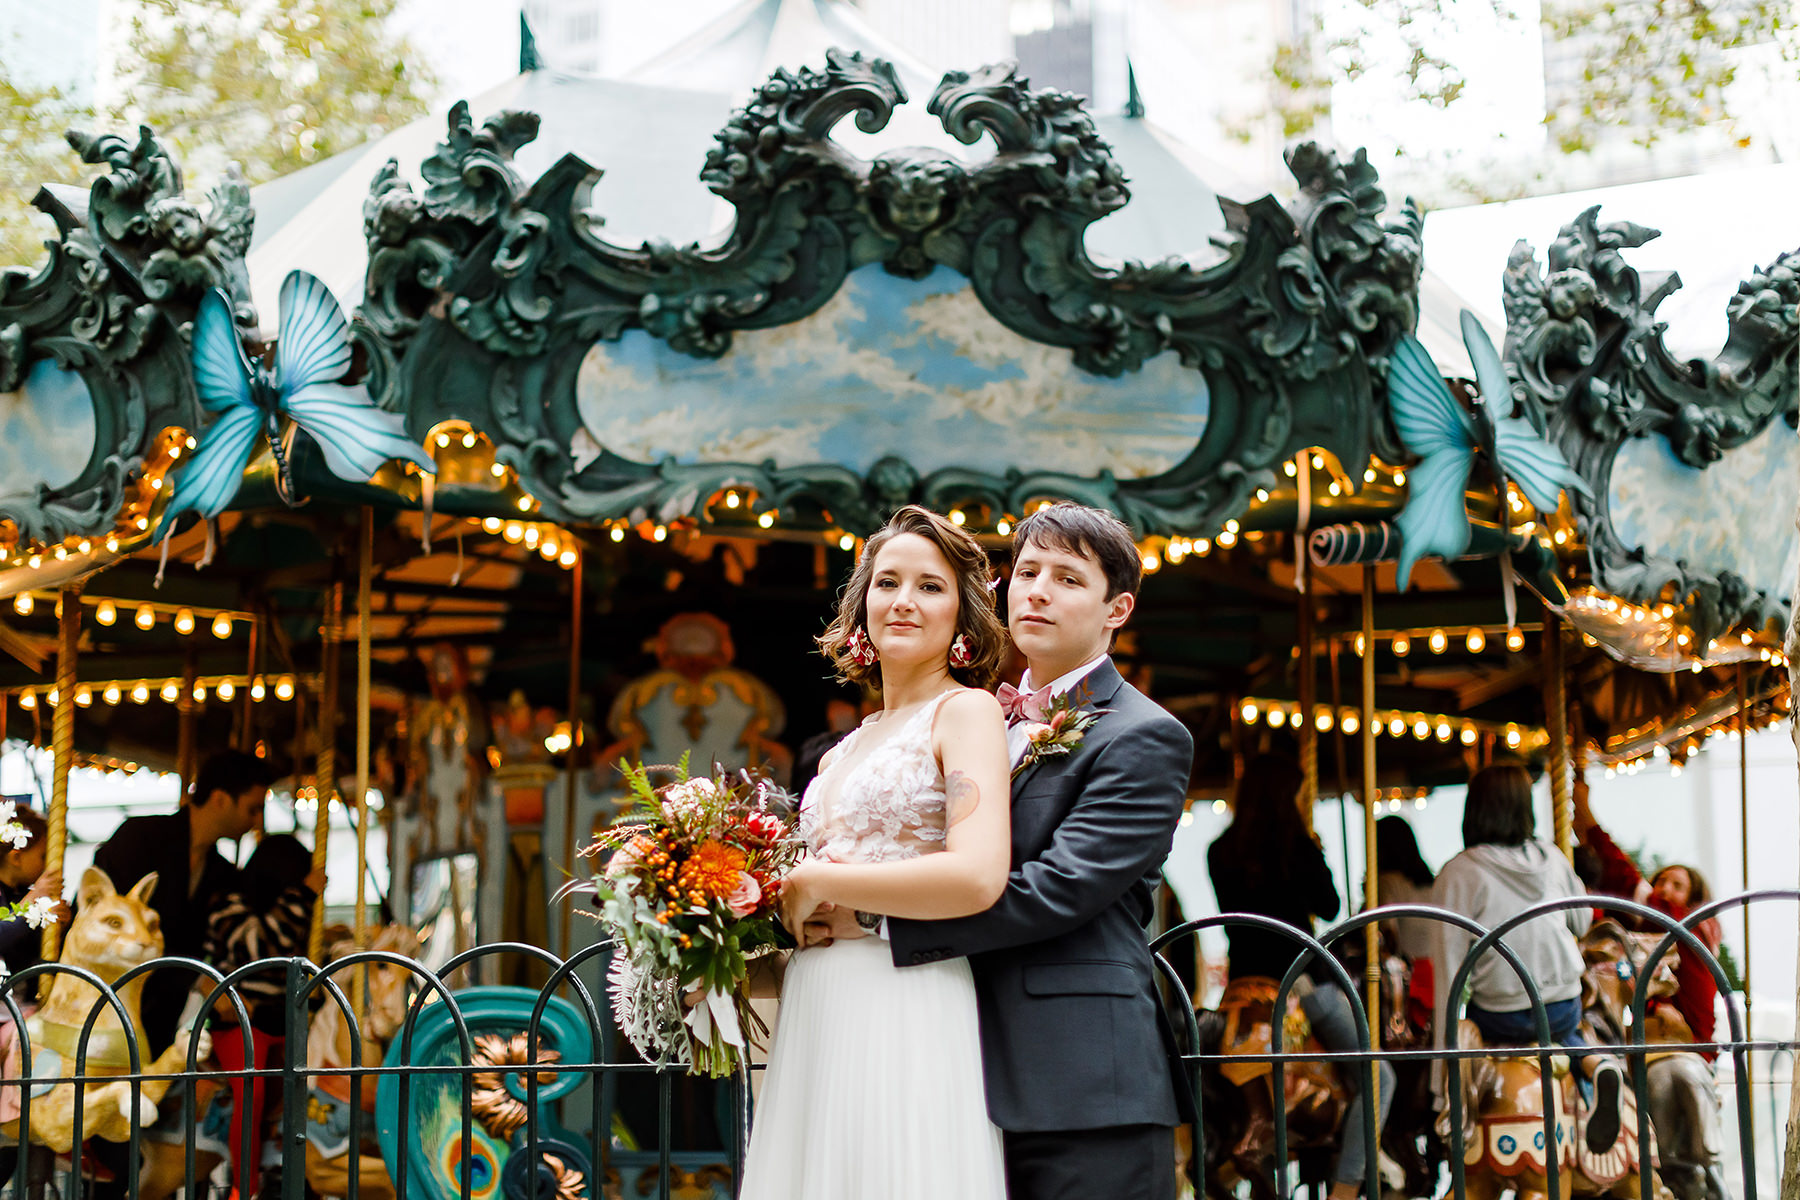 Juliette-and-cary-Carousel